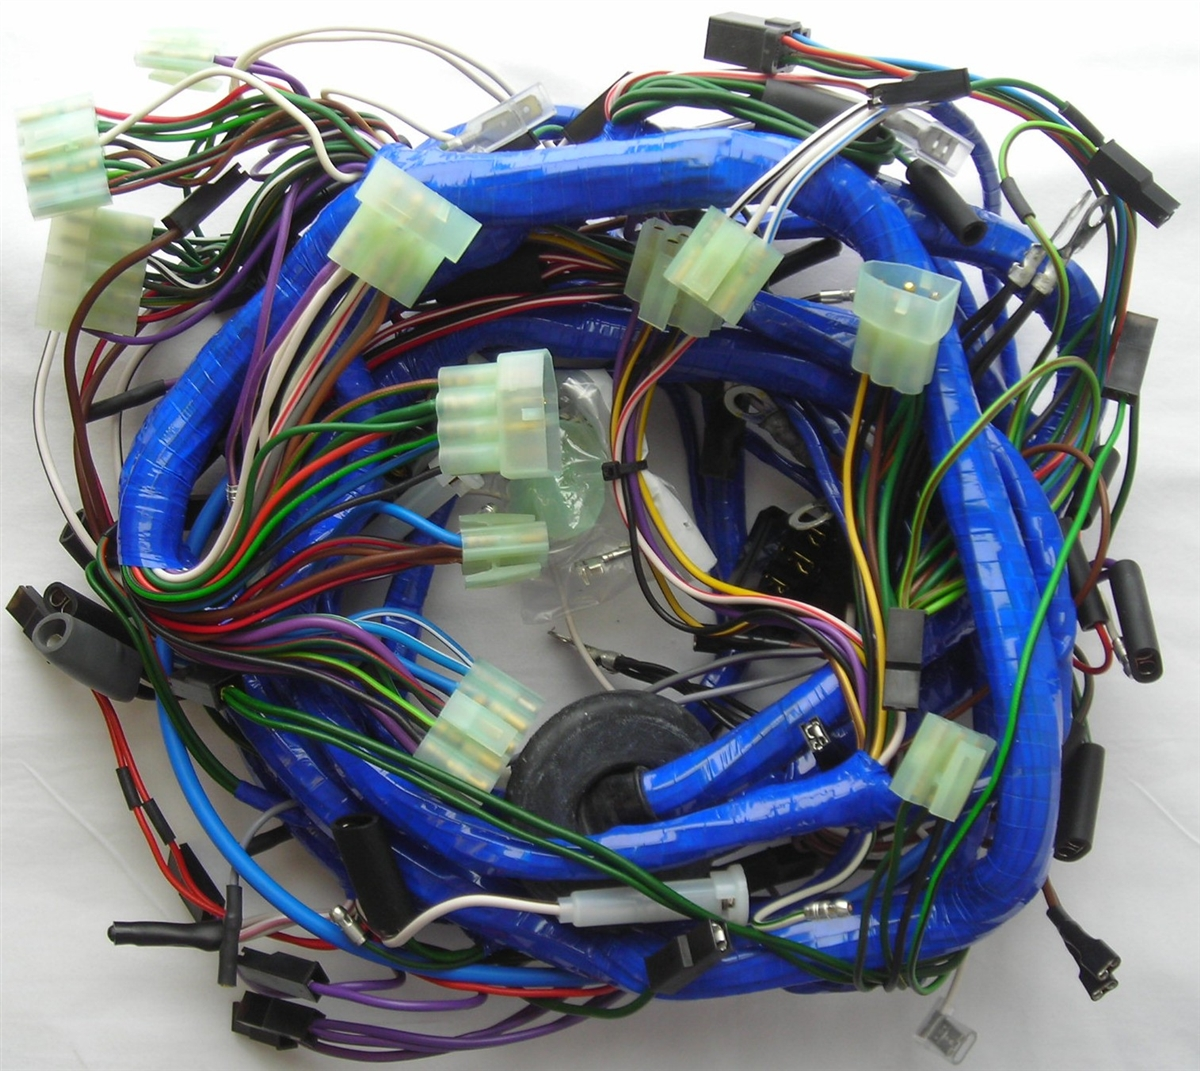 medium resolution of mgb 1976 78 main wiring harness 519 rh britishwiring com 2000 chevrolet blazer wiring harness 1974